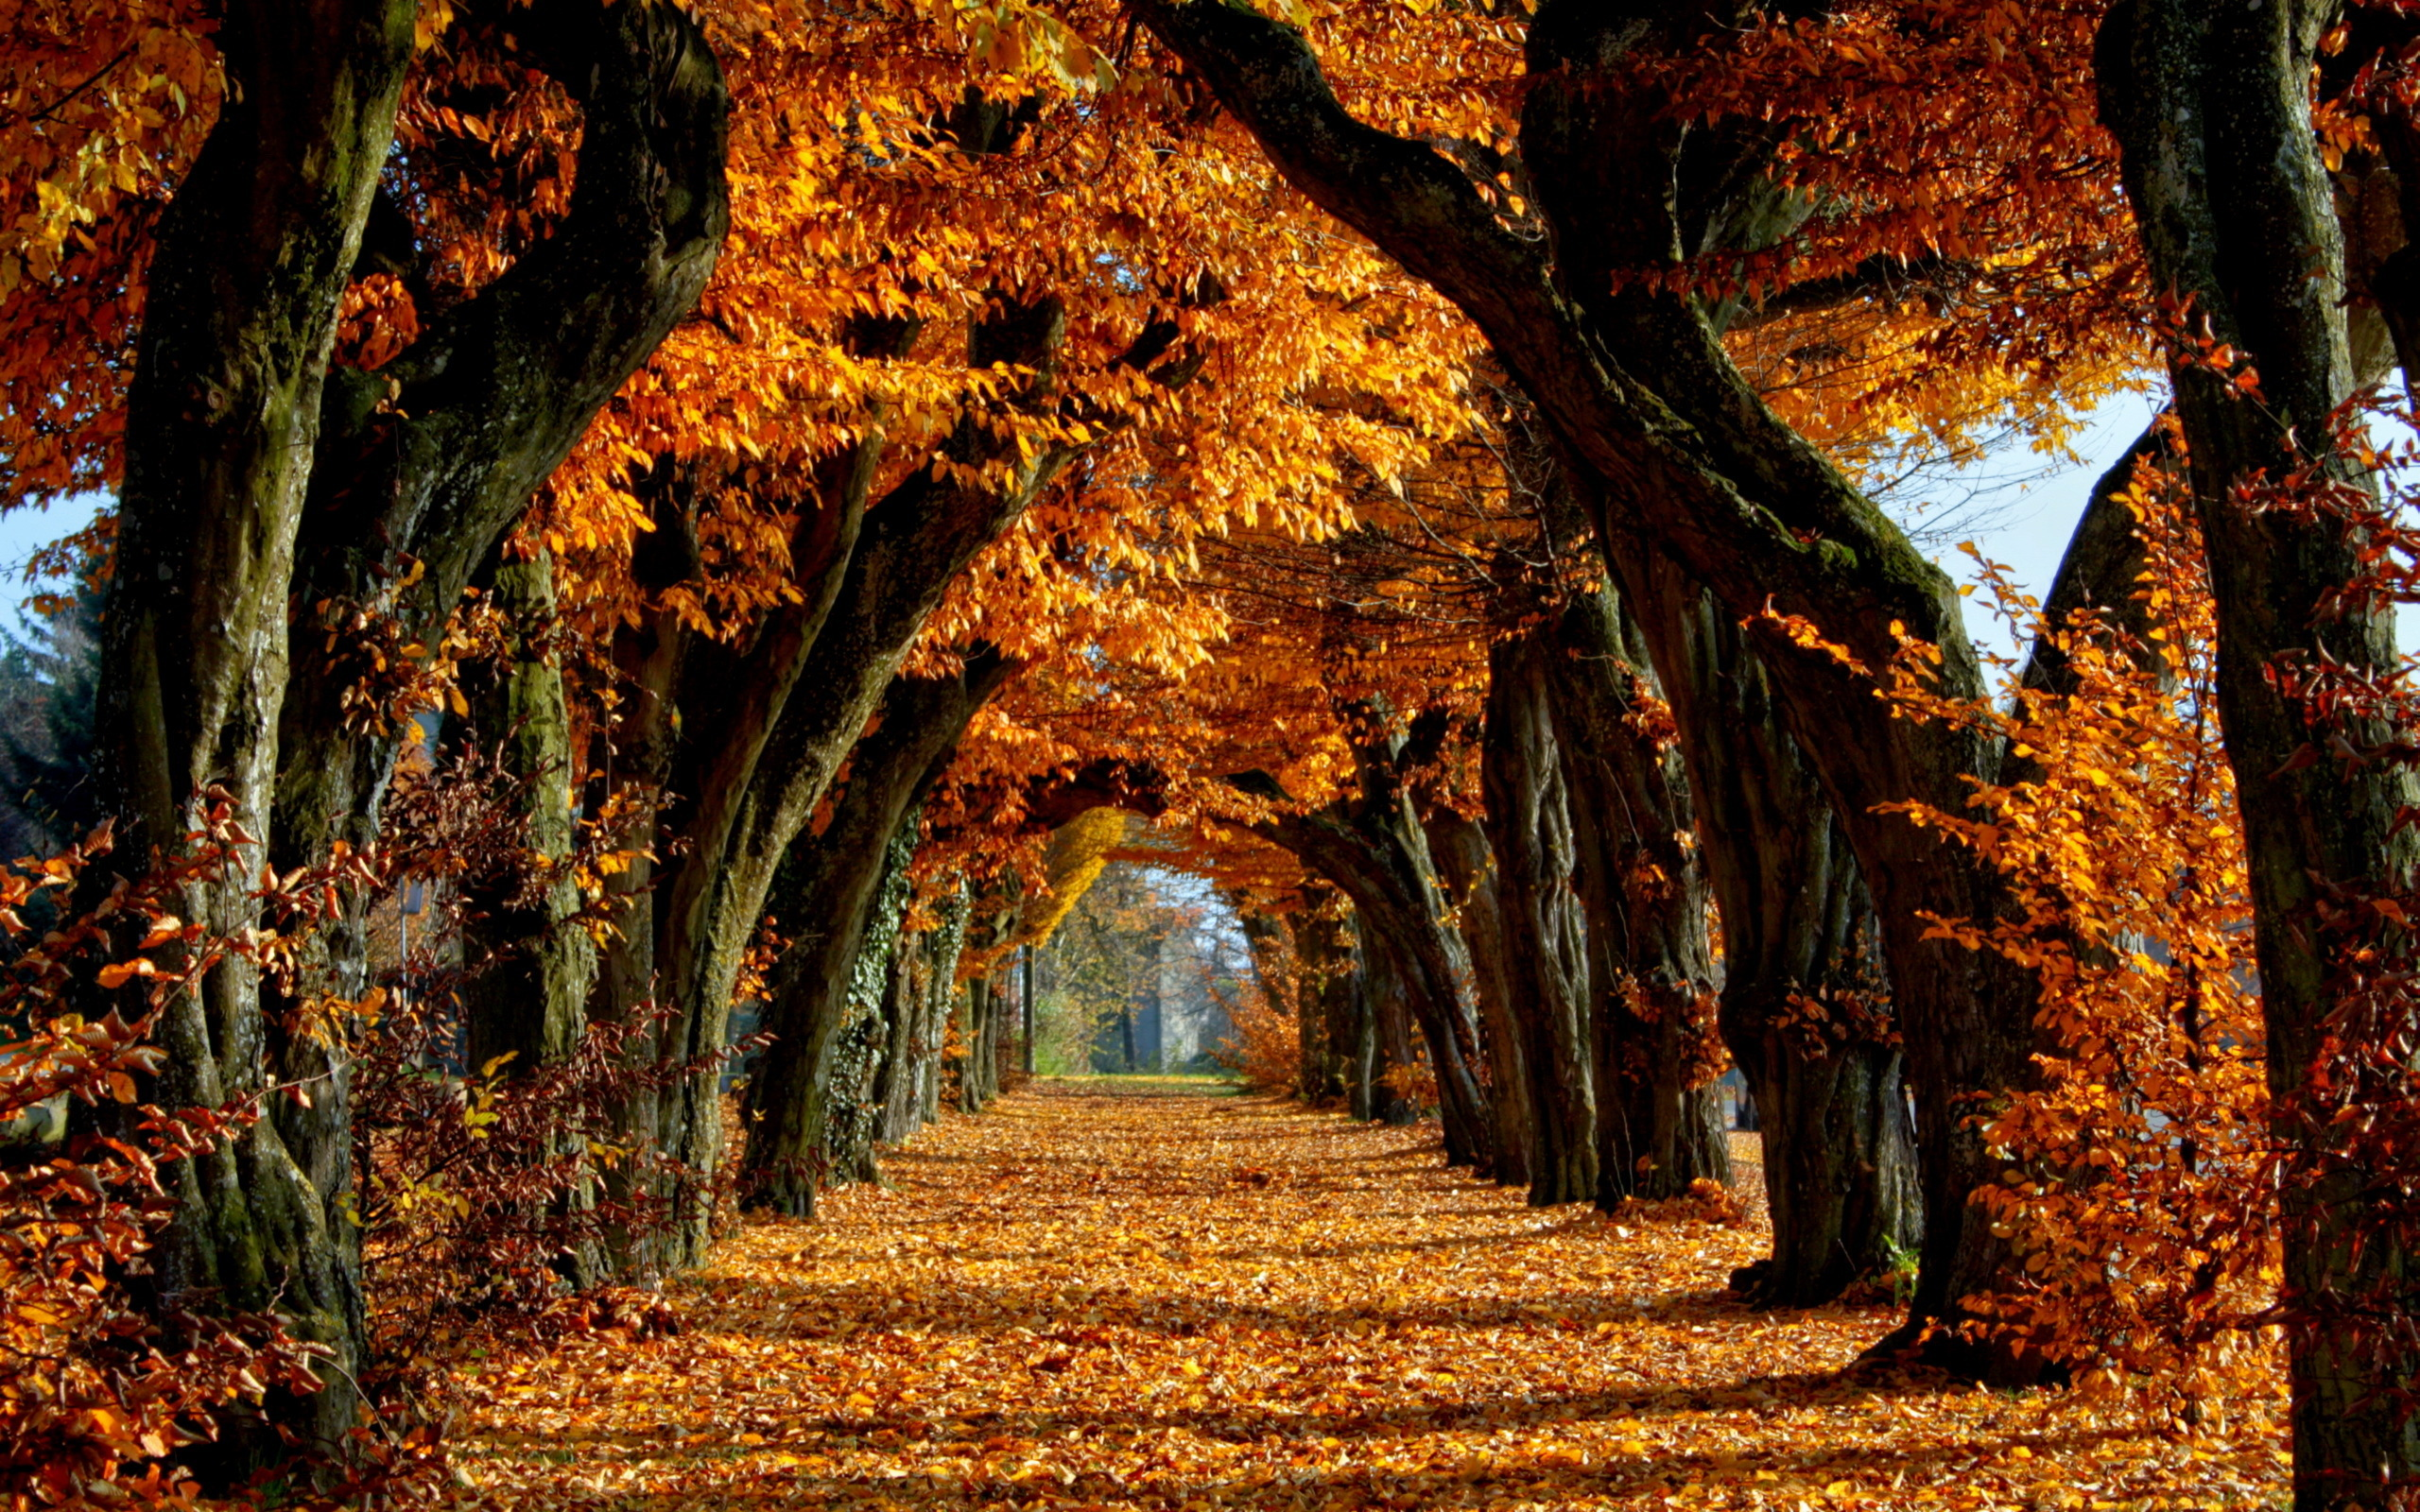 Fall Desktop Wallpaper Backgrounds - WallpaperSafari